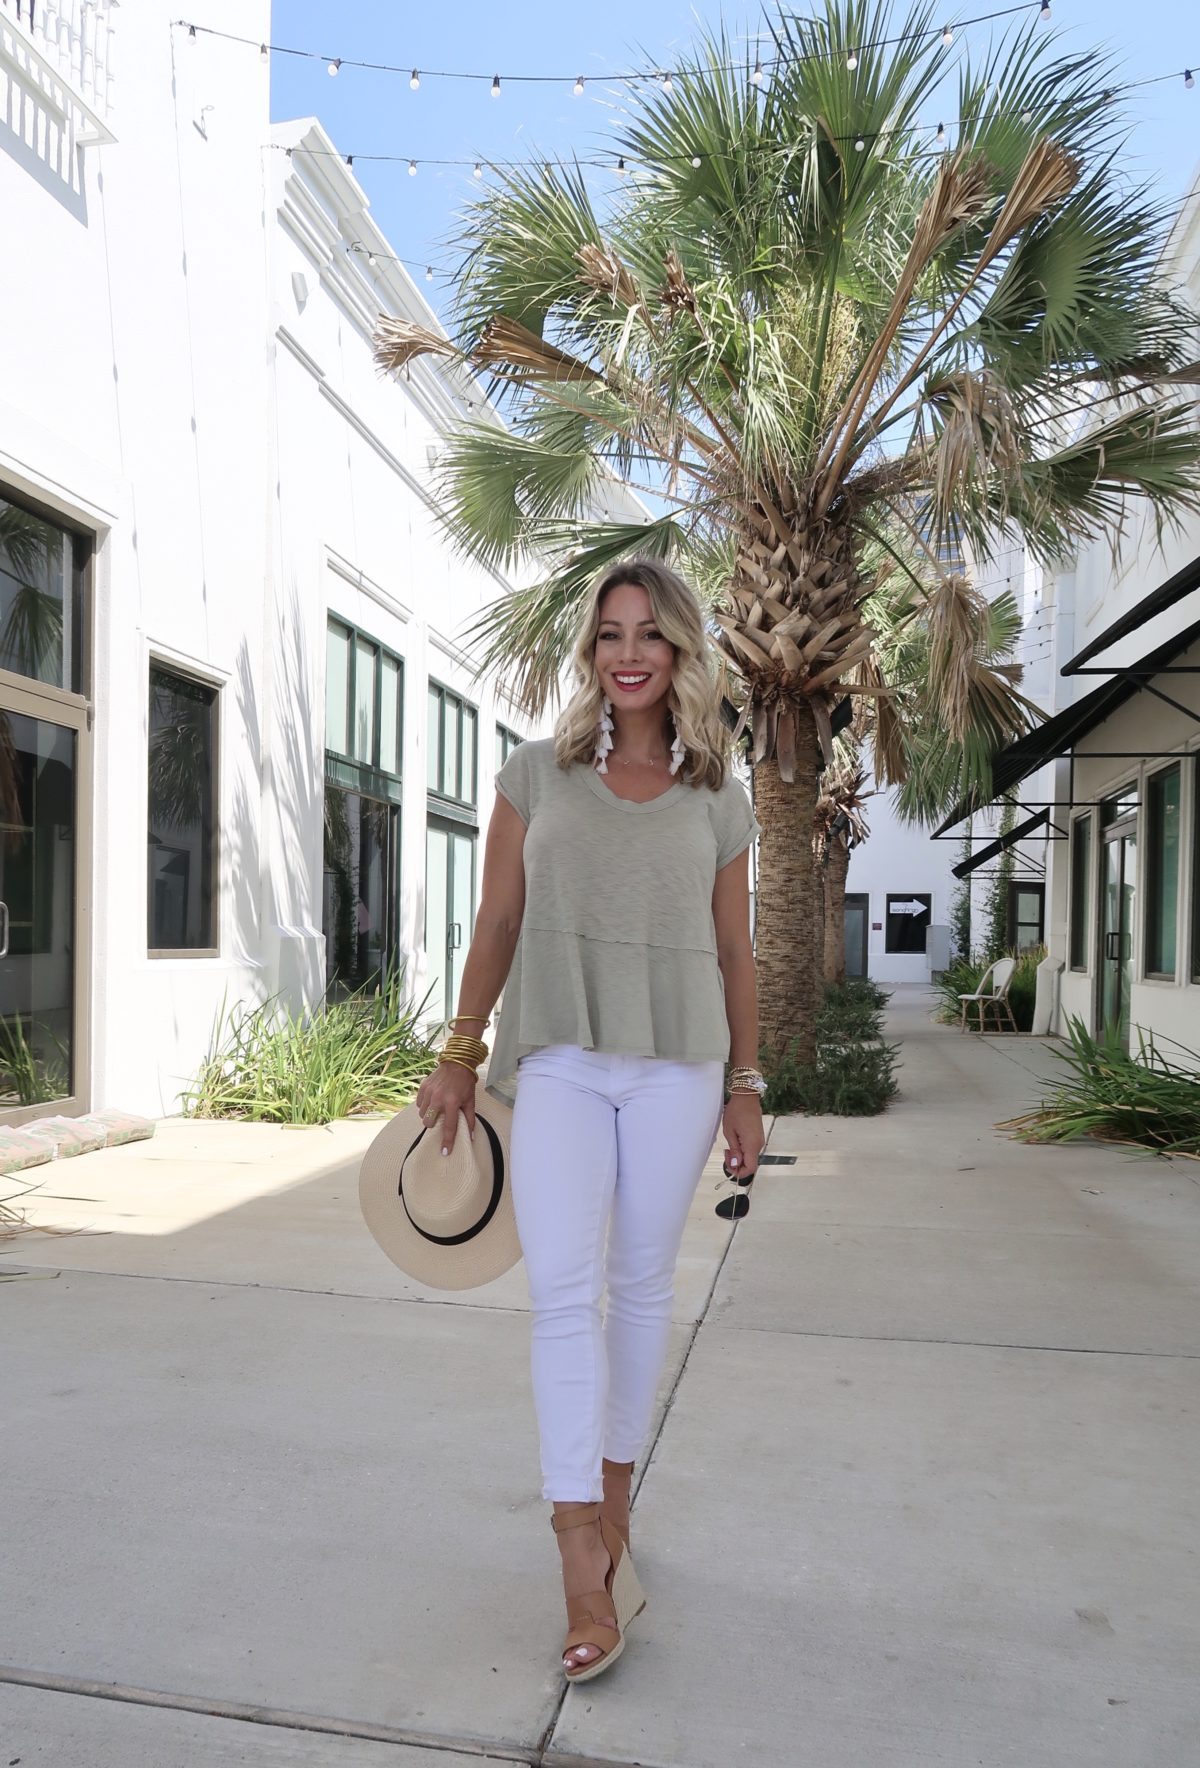 Flirty Summer Styles & Date Night Dresses, Tee, White Jeans, Wedges, Hat